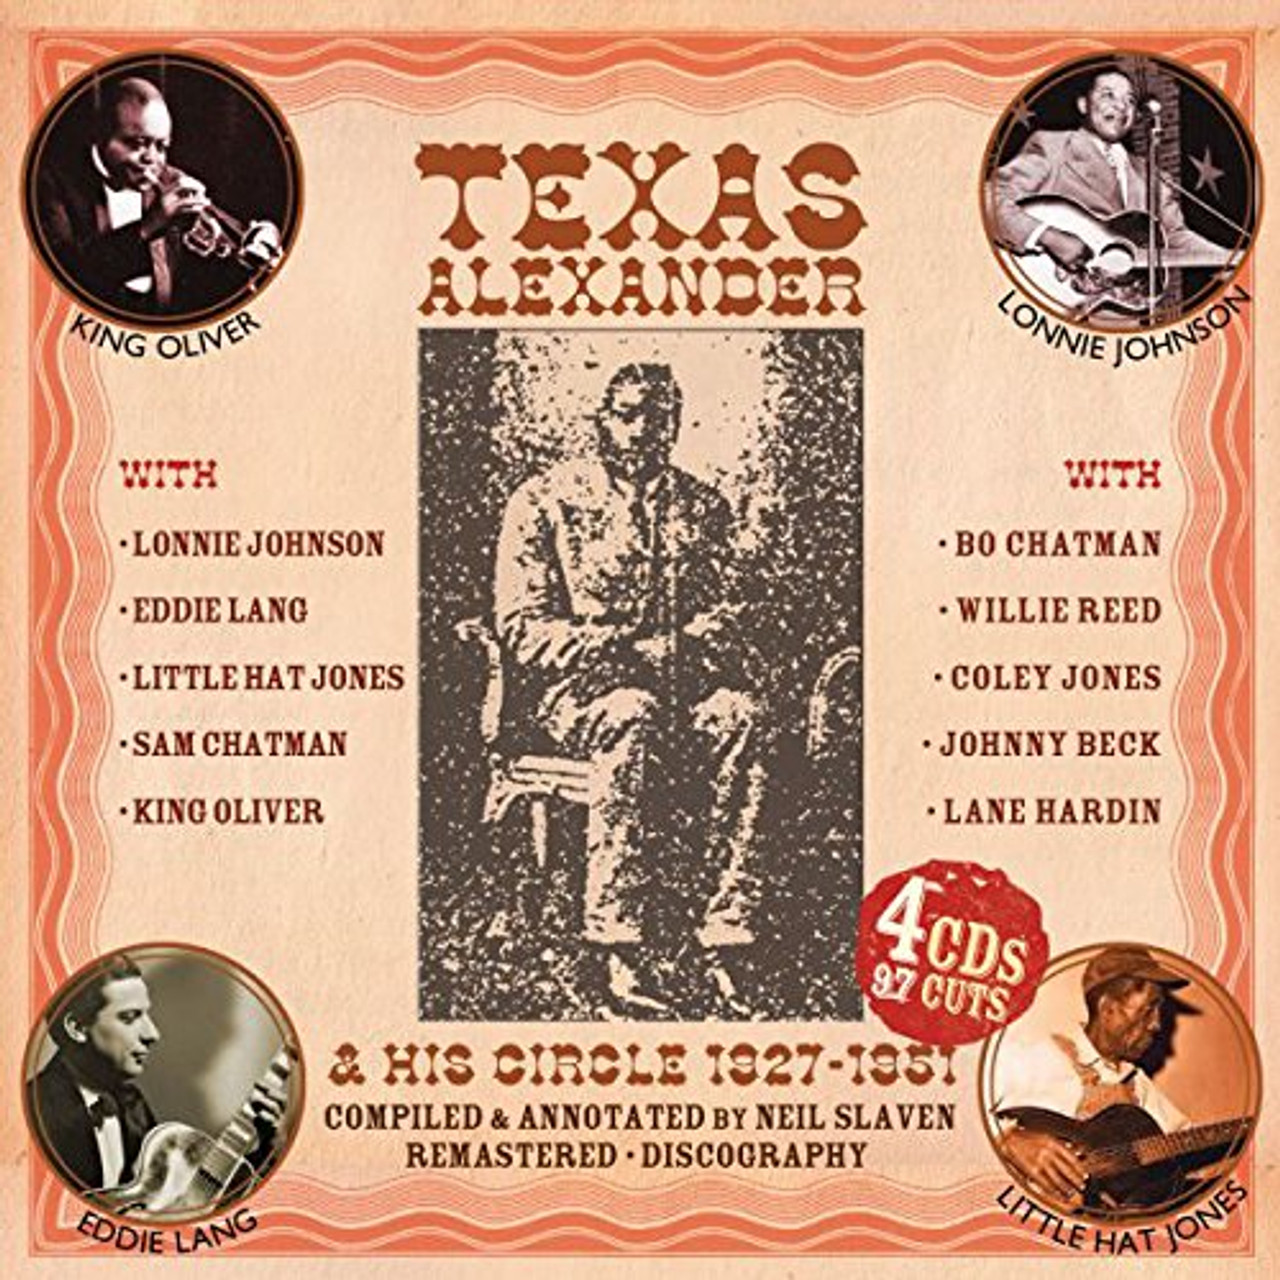 USA ONLY: Texas Alexander & His Circle 1927-1951: Authentic Early Texas Country Blues- 4 CD BOX SET  PLUS 8 ISSUES AND FREE SHIPPING